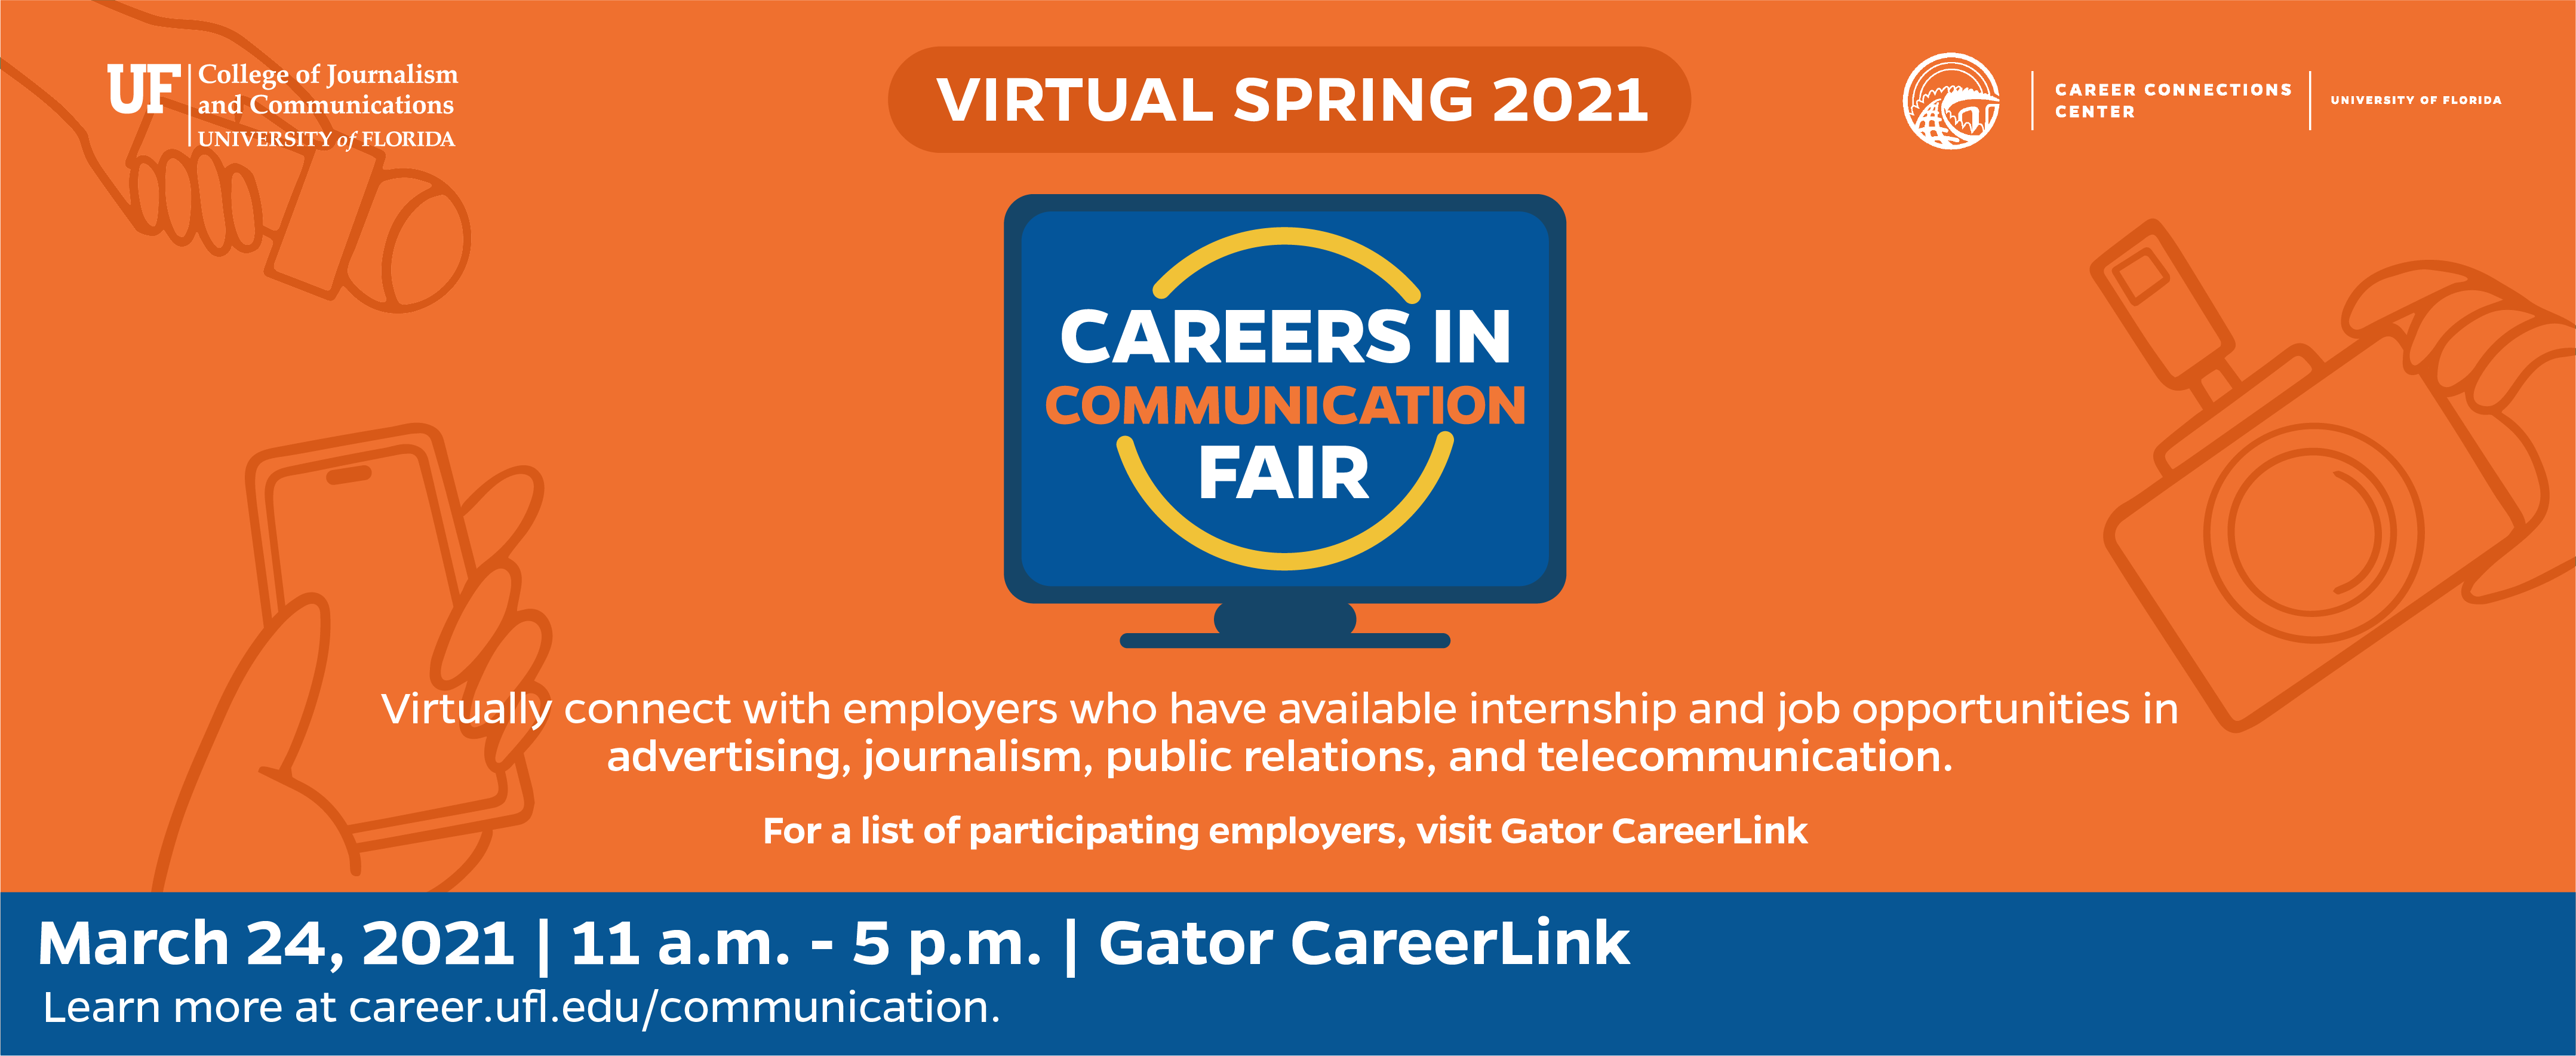 Careers in Communication Fair header image with computer graphic